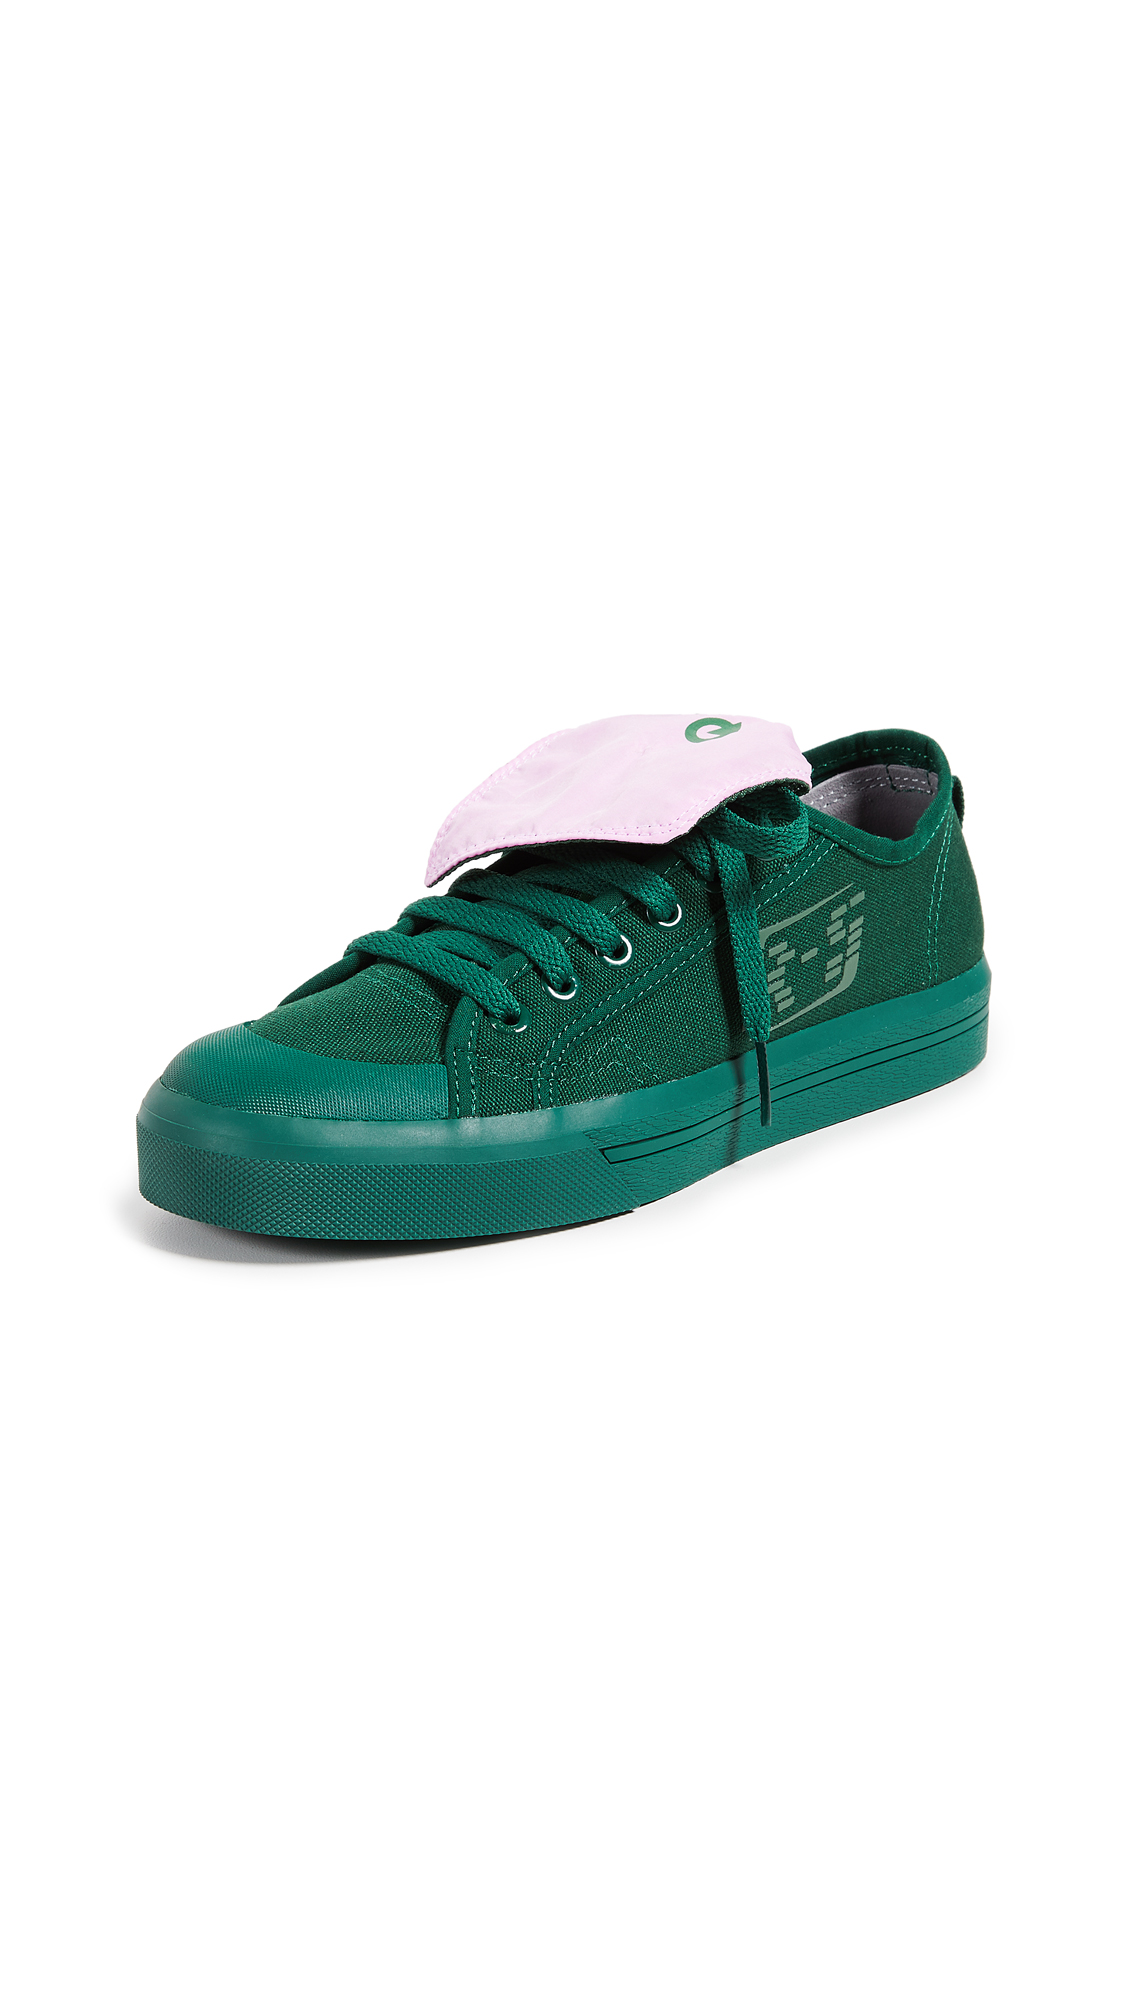 Adidas Raf Simons Spirit Low Asymmetrical Tongue Sneakers - Dark Green/Pink